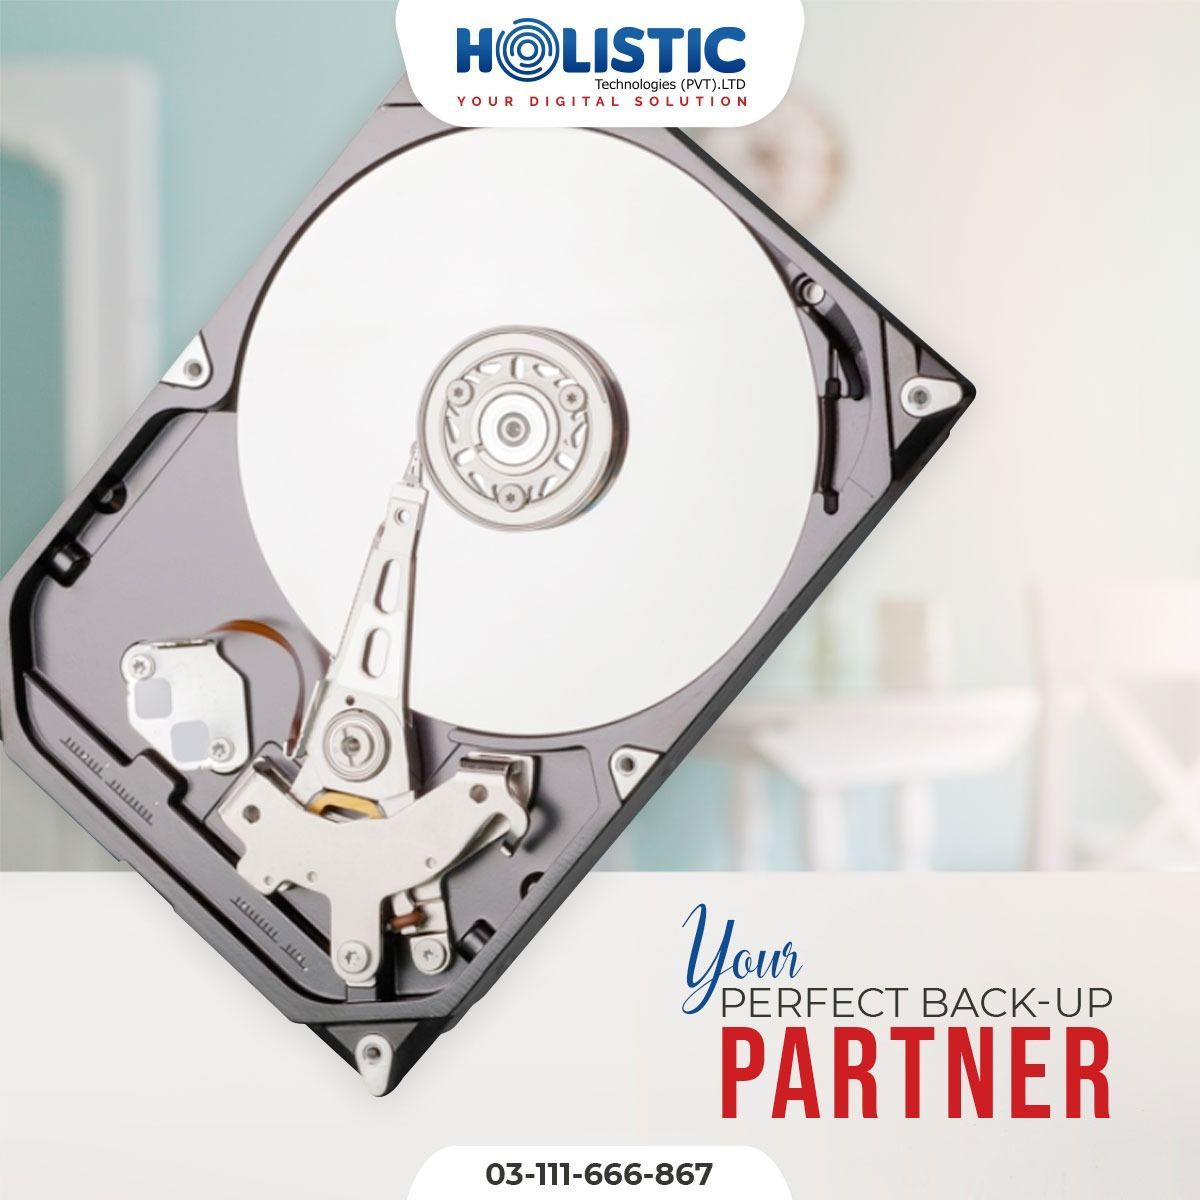 Backup Your Data Regularly To Be On The Safe Side Keep Your Data Secure And Protected On Smart External Stora In 2020 Mobile Phone Repair Macbook Repair Laptop Repair